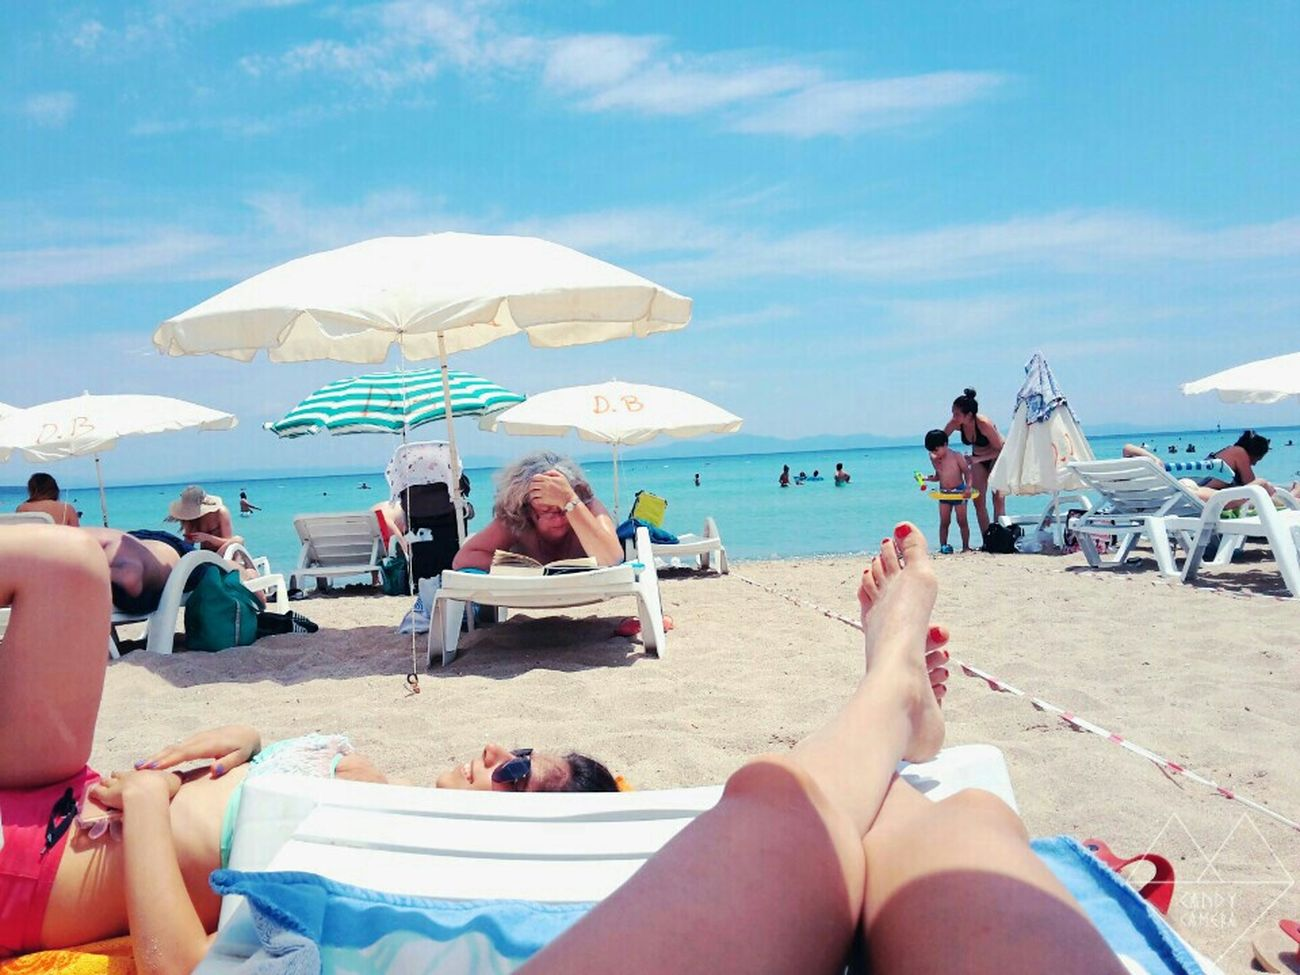 Holiday POV Sunshine Hello World Enjoying The Sun Sea Being A Beach Bum The Best From Holiday POV